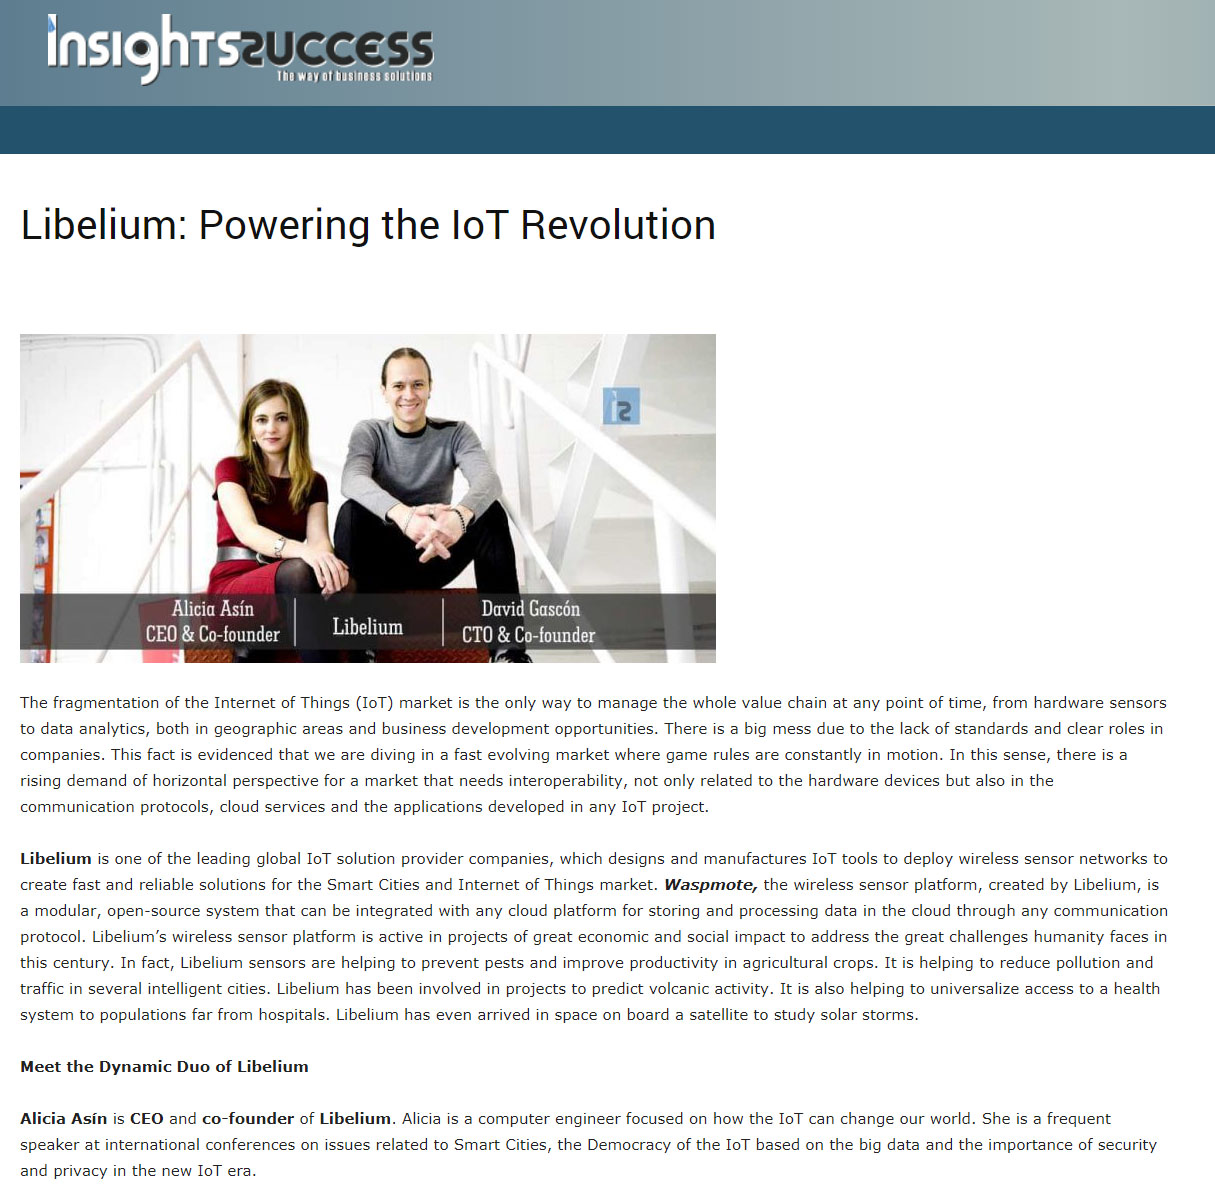 Insights Success – Libelium: Powering the IoT Revolution